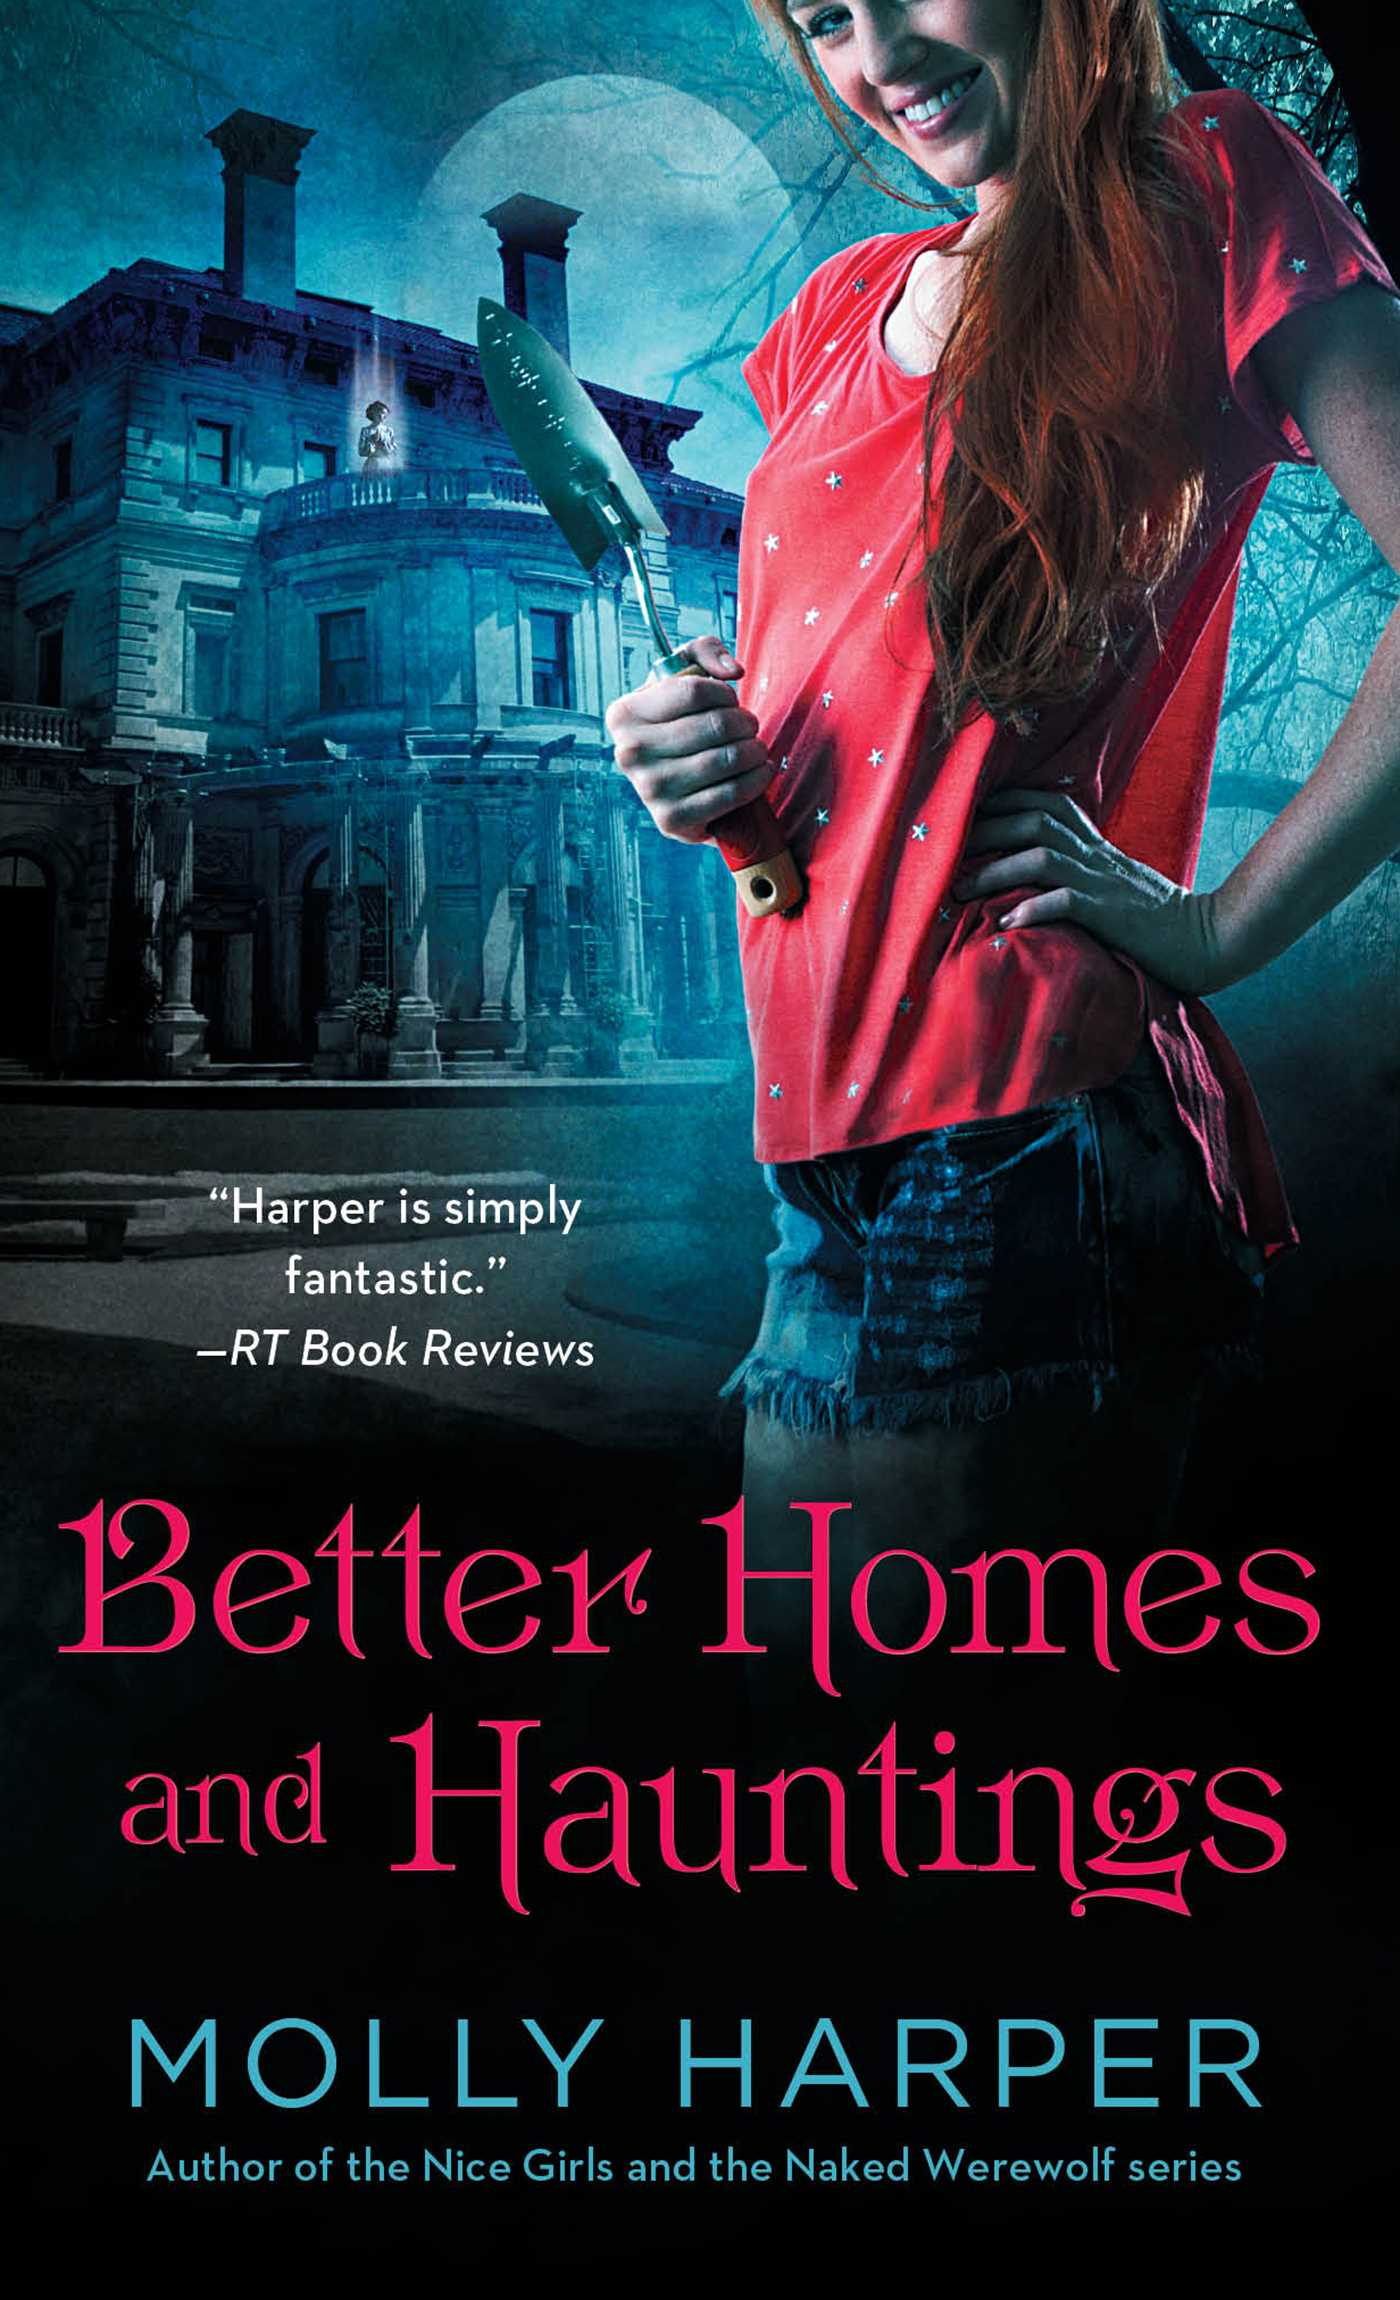 Better homes and hauntings 9781476706009 hr